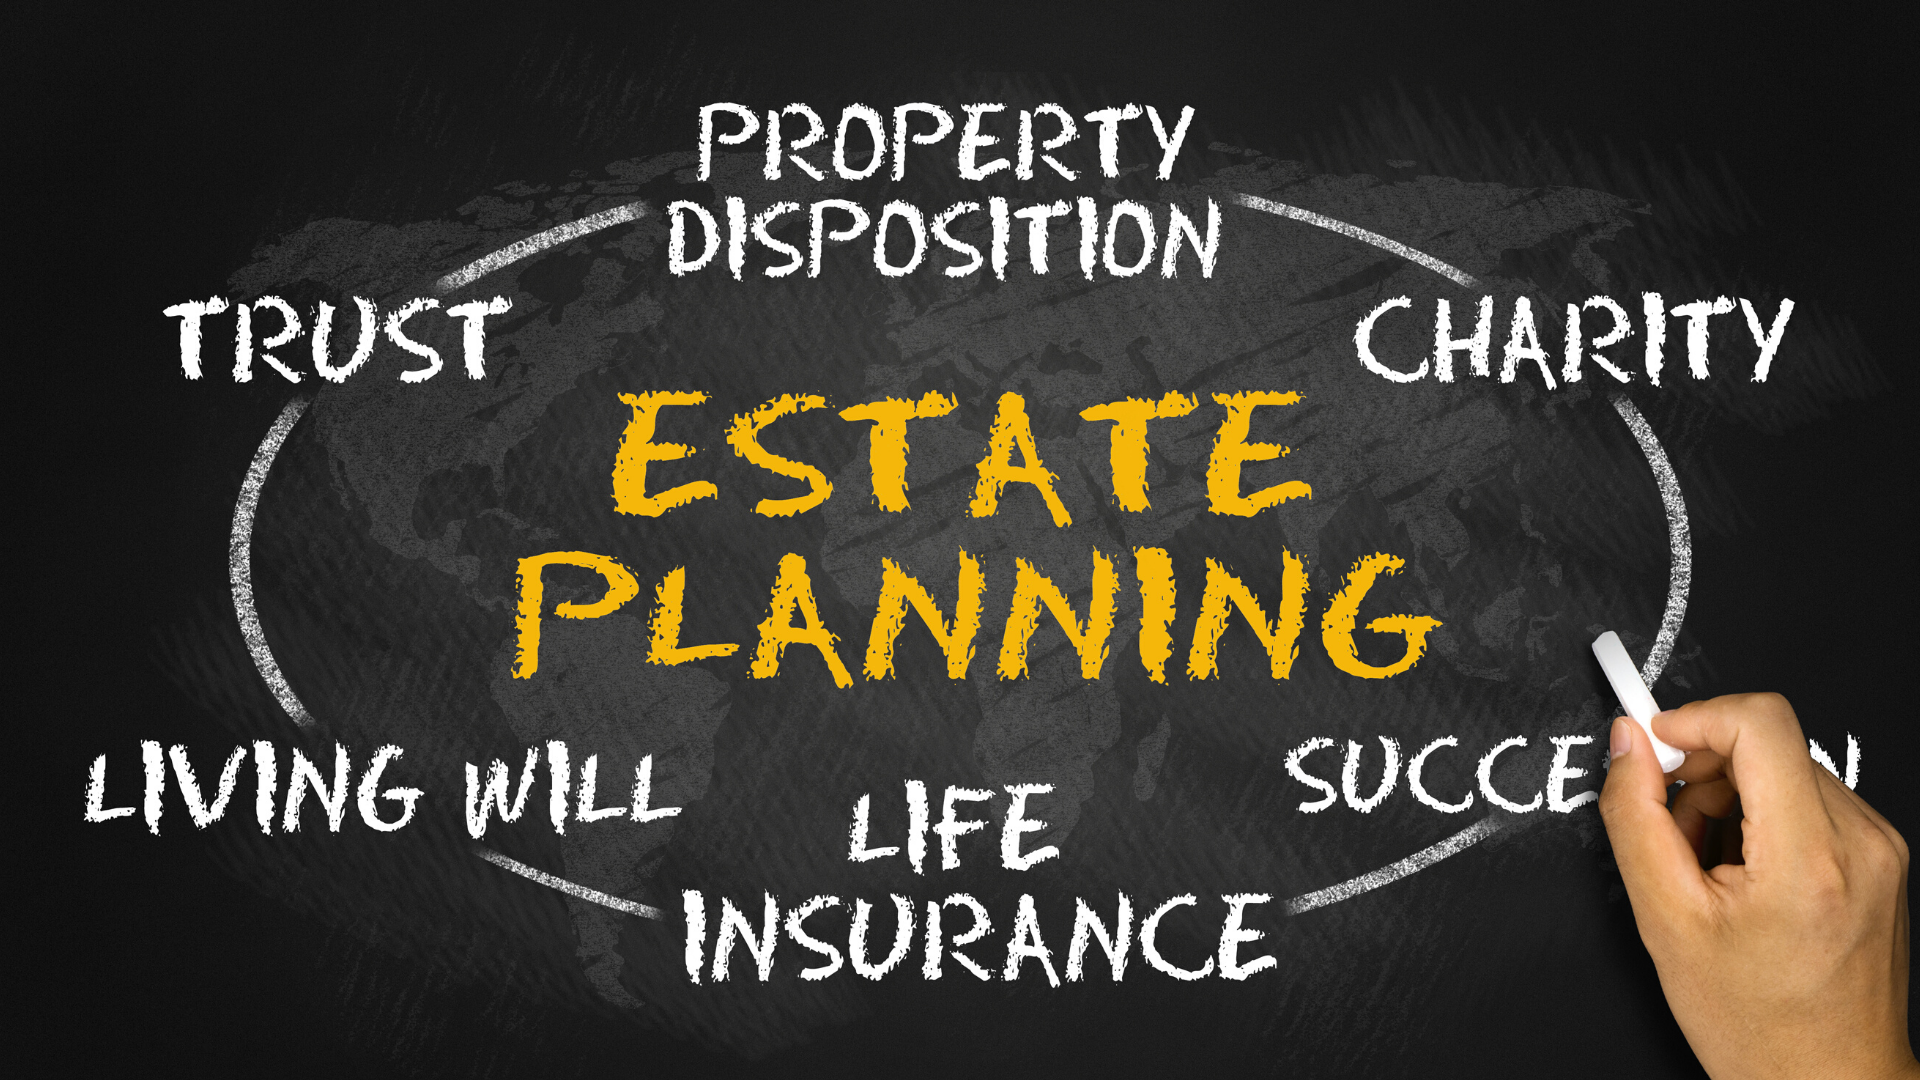 How to Ensure Your Life Wishes Are Granted Through Effective Estate Planning